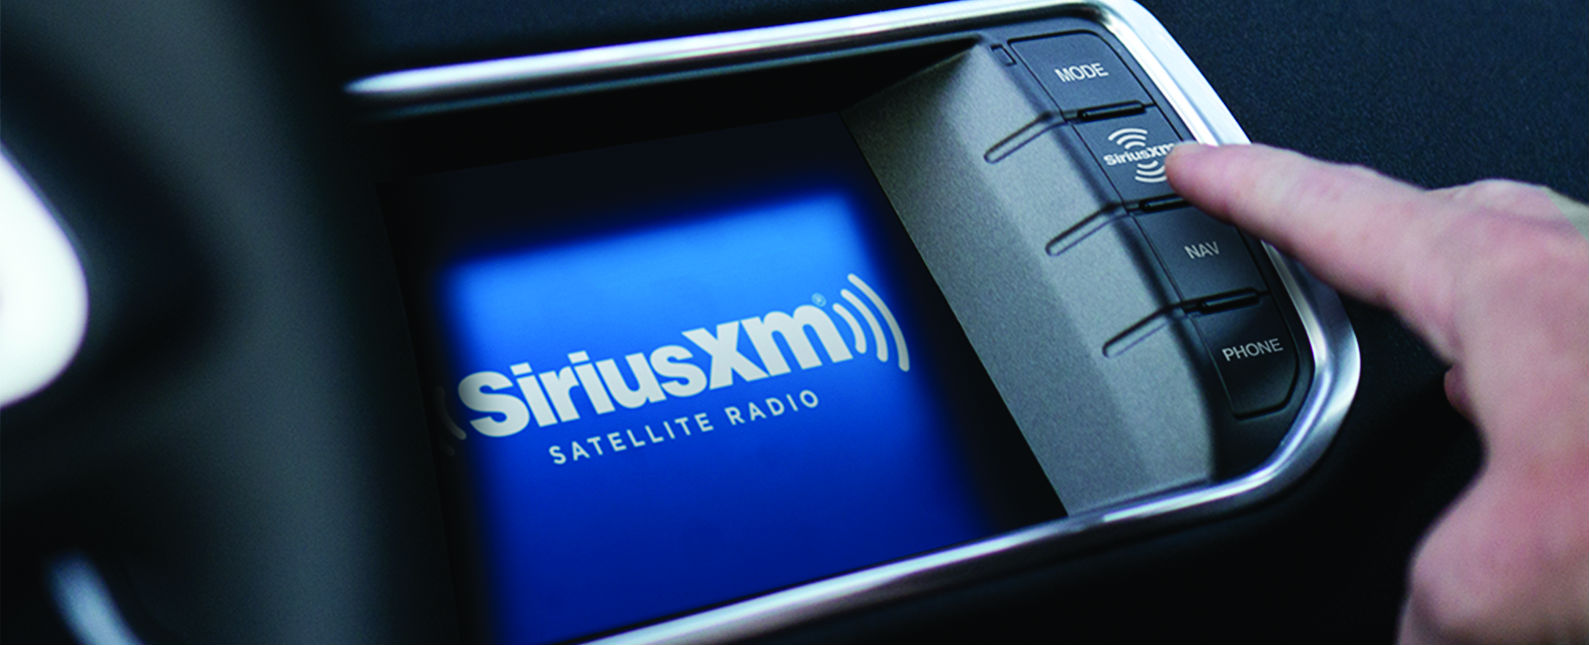 Enlightone: SiriusXM Shareholders Go To Court In Takeover Dispute